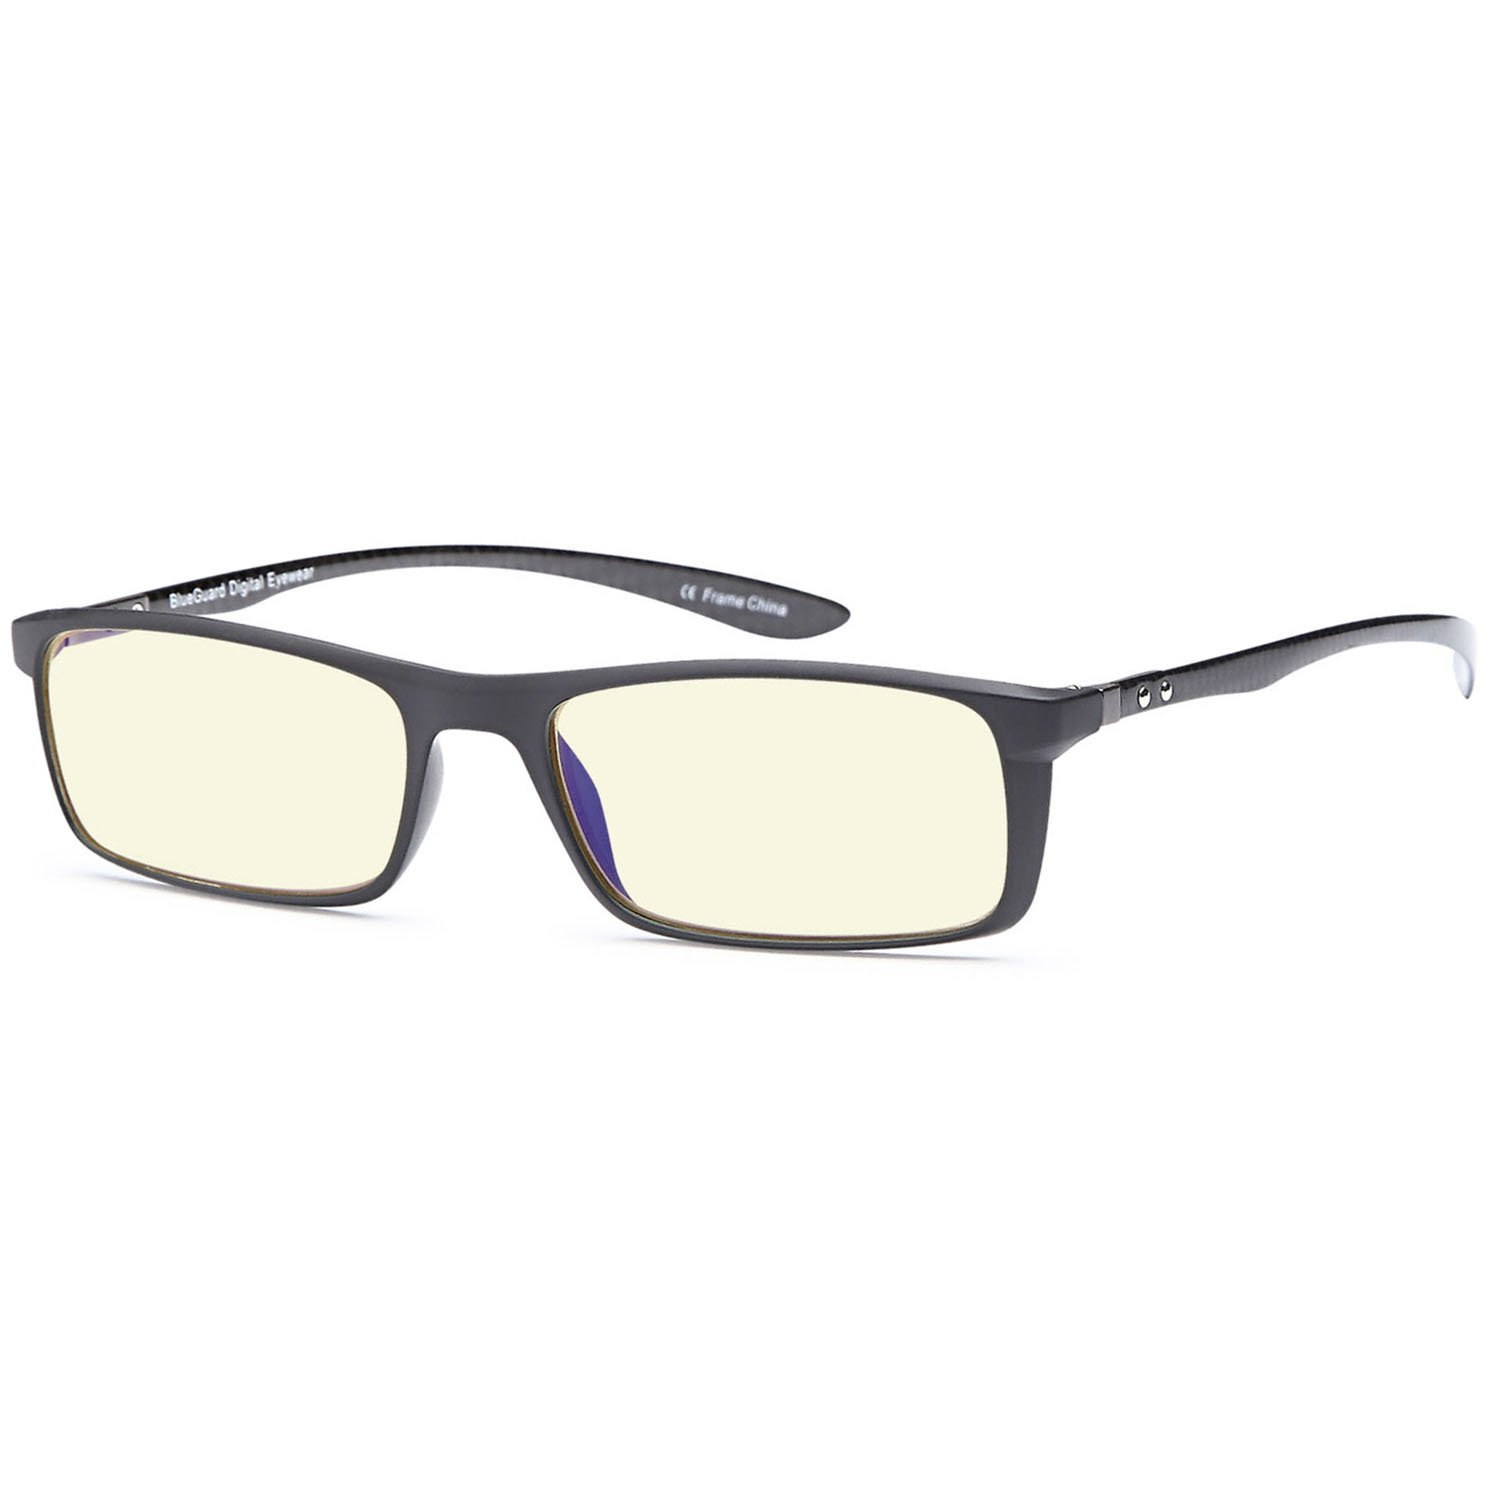 TRUST OPTICS FeatherView Computer Video Gaming Glasses in Lightweight Tortoise TR90 Frame and Anti UV High Energy Blue Light Lenses